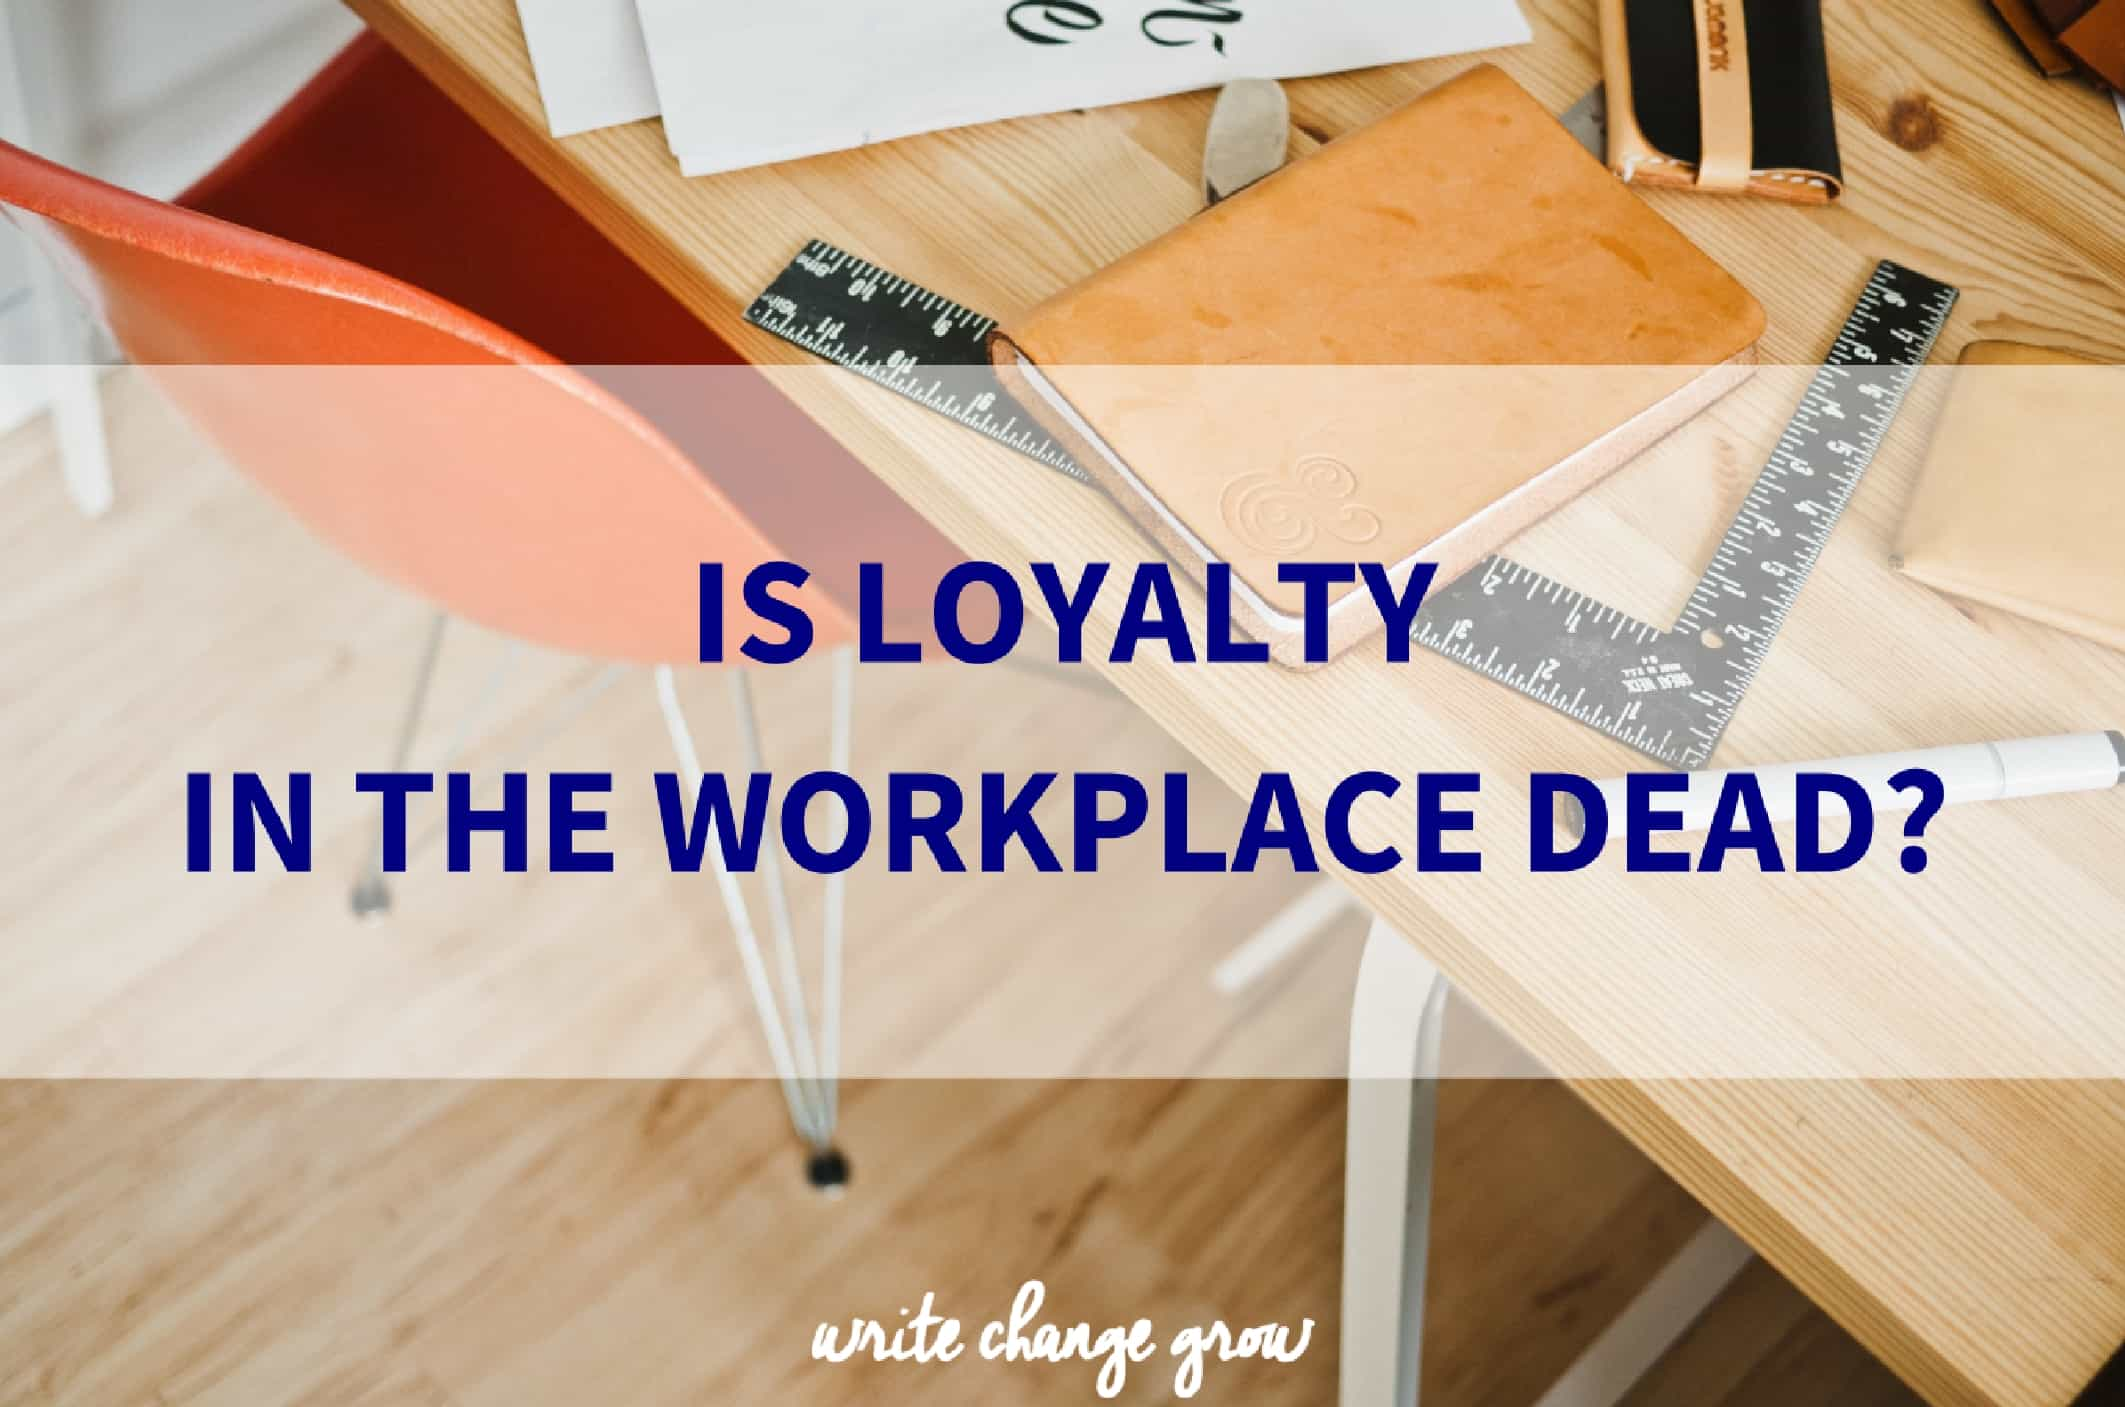 Does loyalty in the workplace still exist and if so who is being loyal to whom?